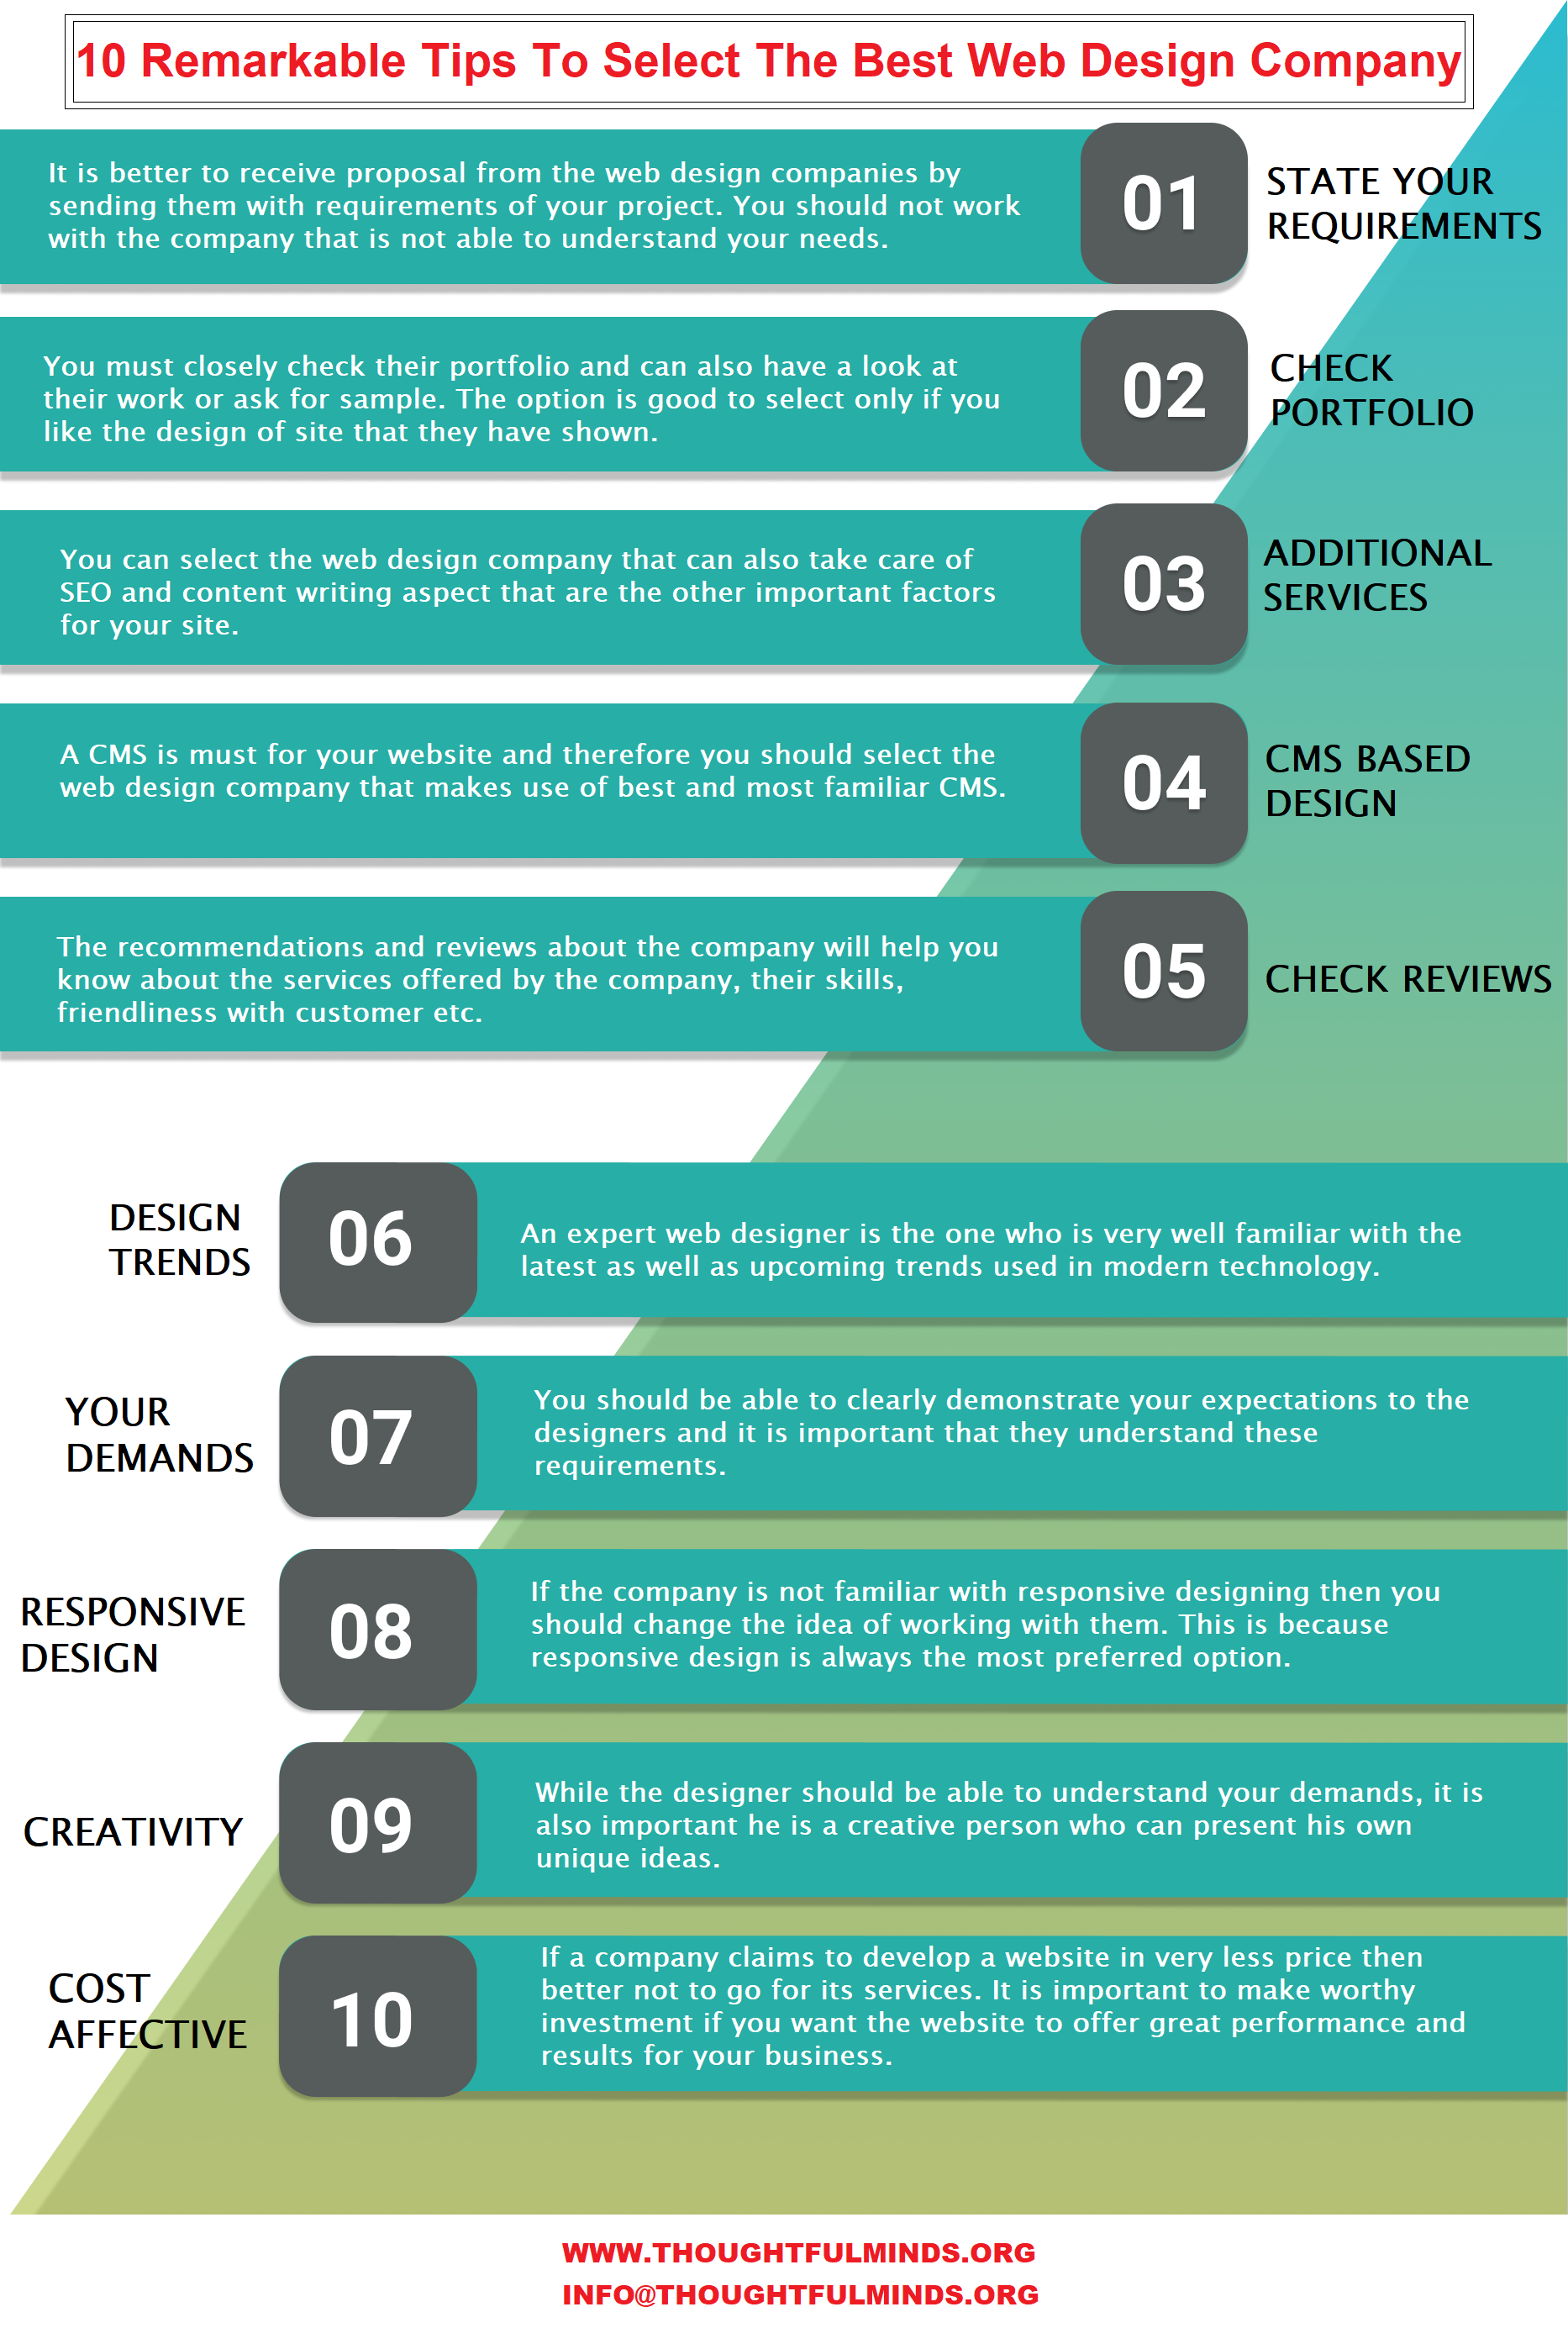 10 Remarkable Tips To Select The Best Web Design Company Infographic - ThoughtfulMinds